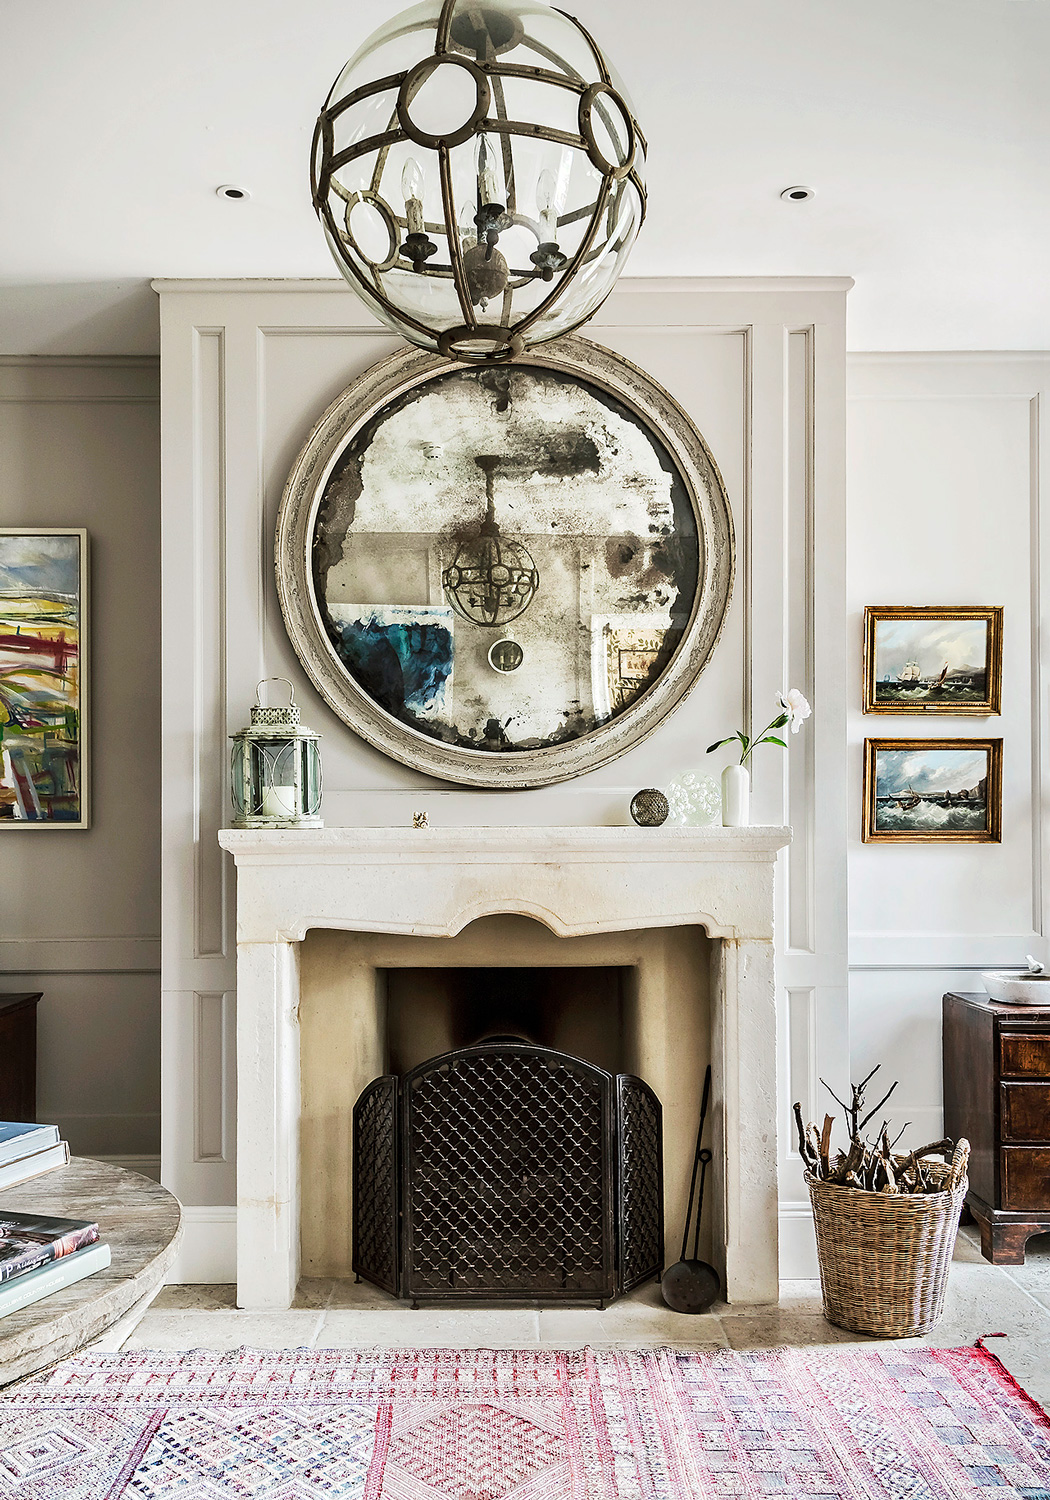 Fireplace and mirror – interior design by Eadie & Crole